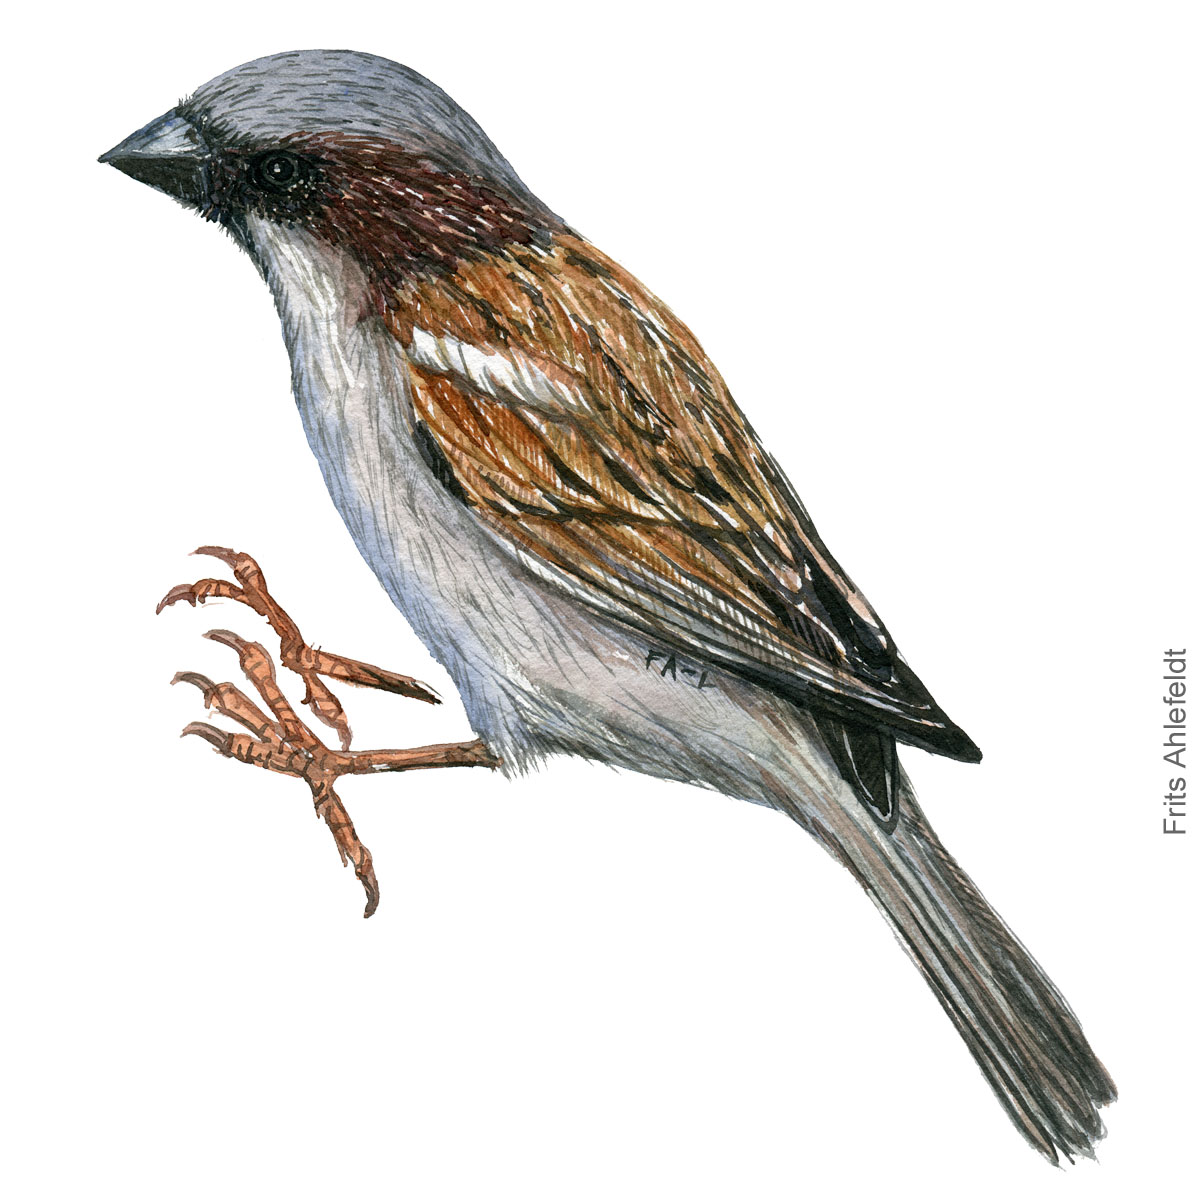 Graaspurv - House sparrow - Bird painting in watercolor by Frits Ahlefeldt - Fugle akvarel